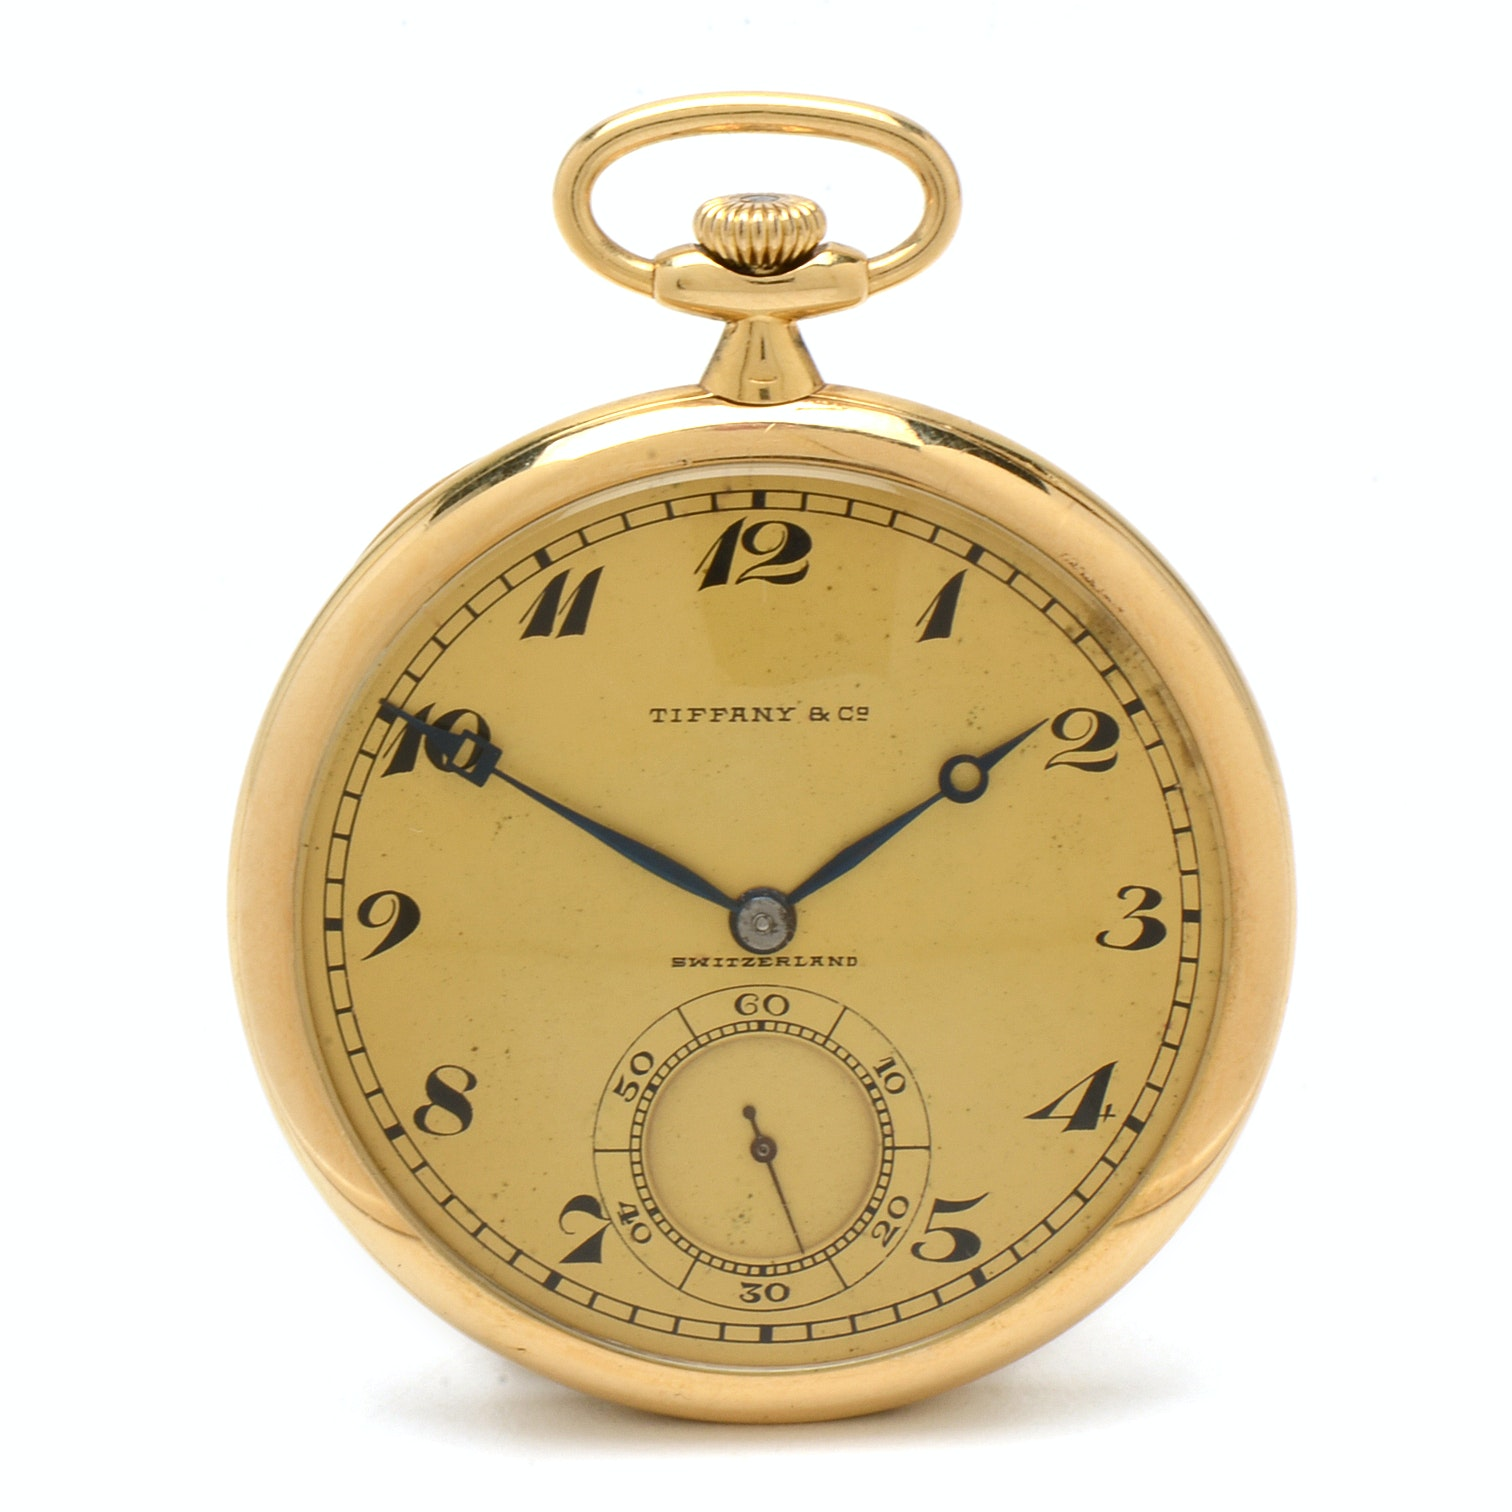 Vintage Tiffany & Co. 18K Yellow Gold Open Face Pocket Watch